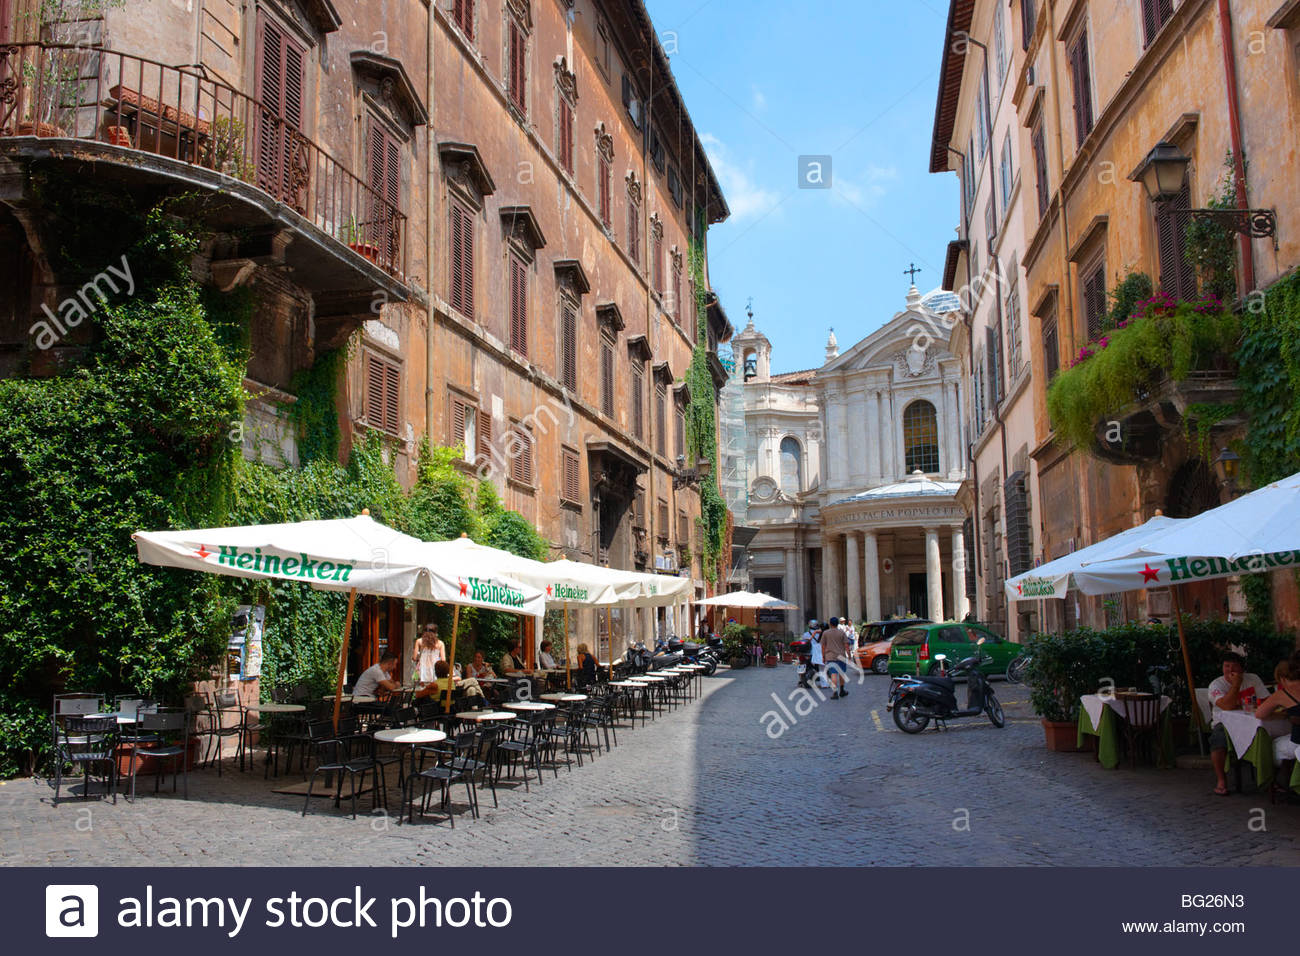 Cobbled streets and cafes of the Piazza Navona region of Rome - Stock Image